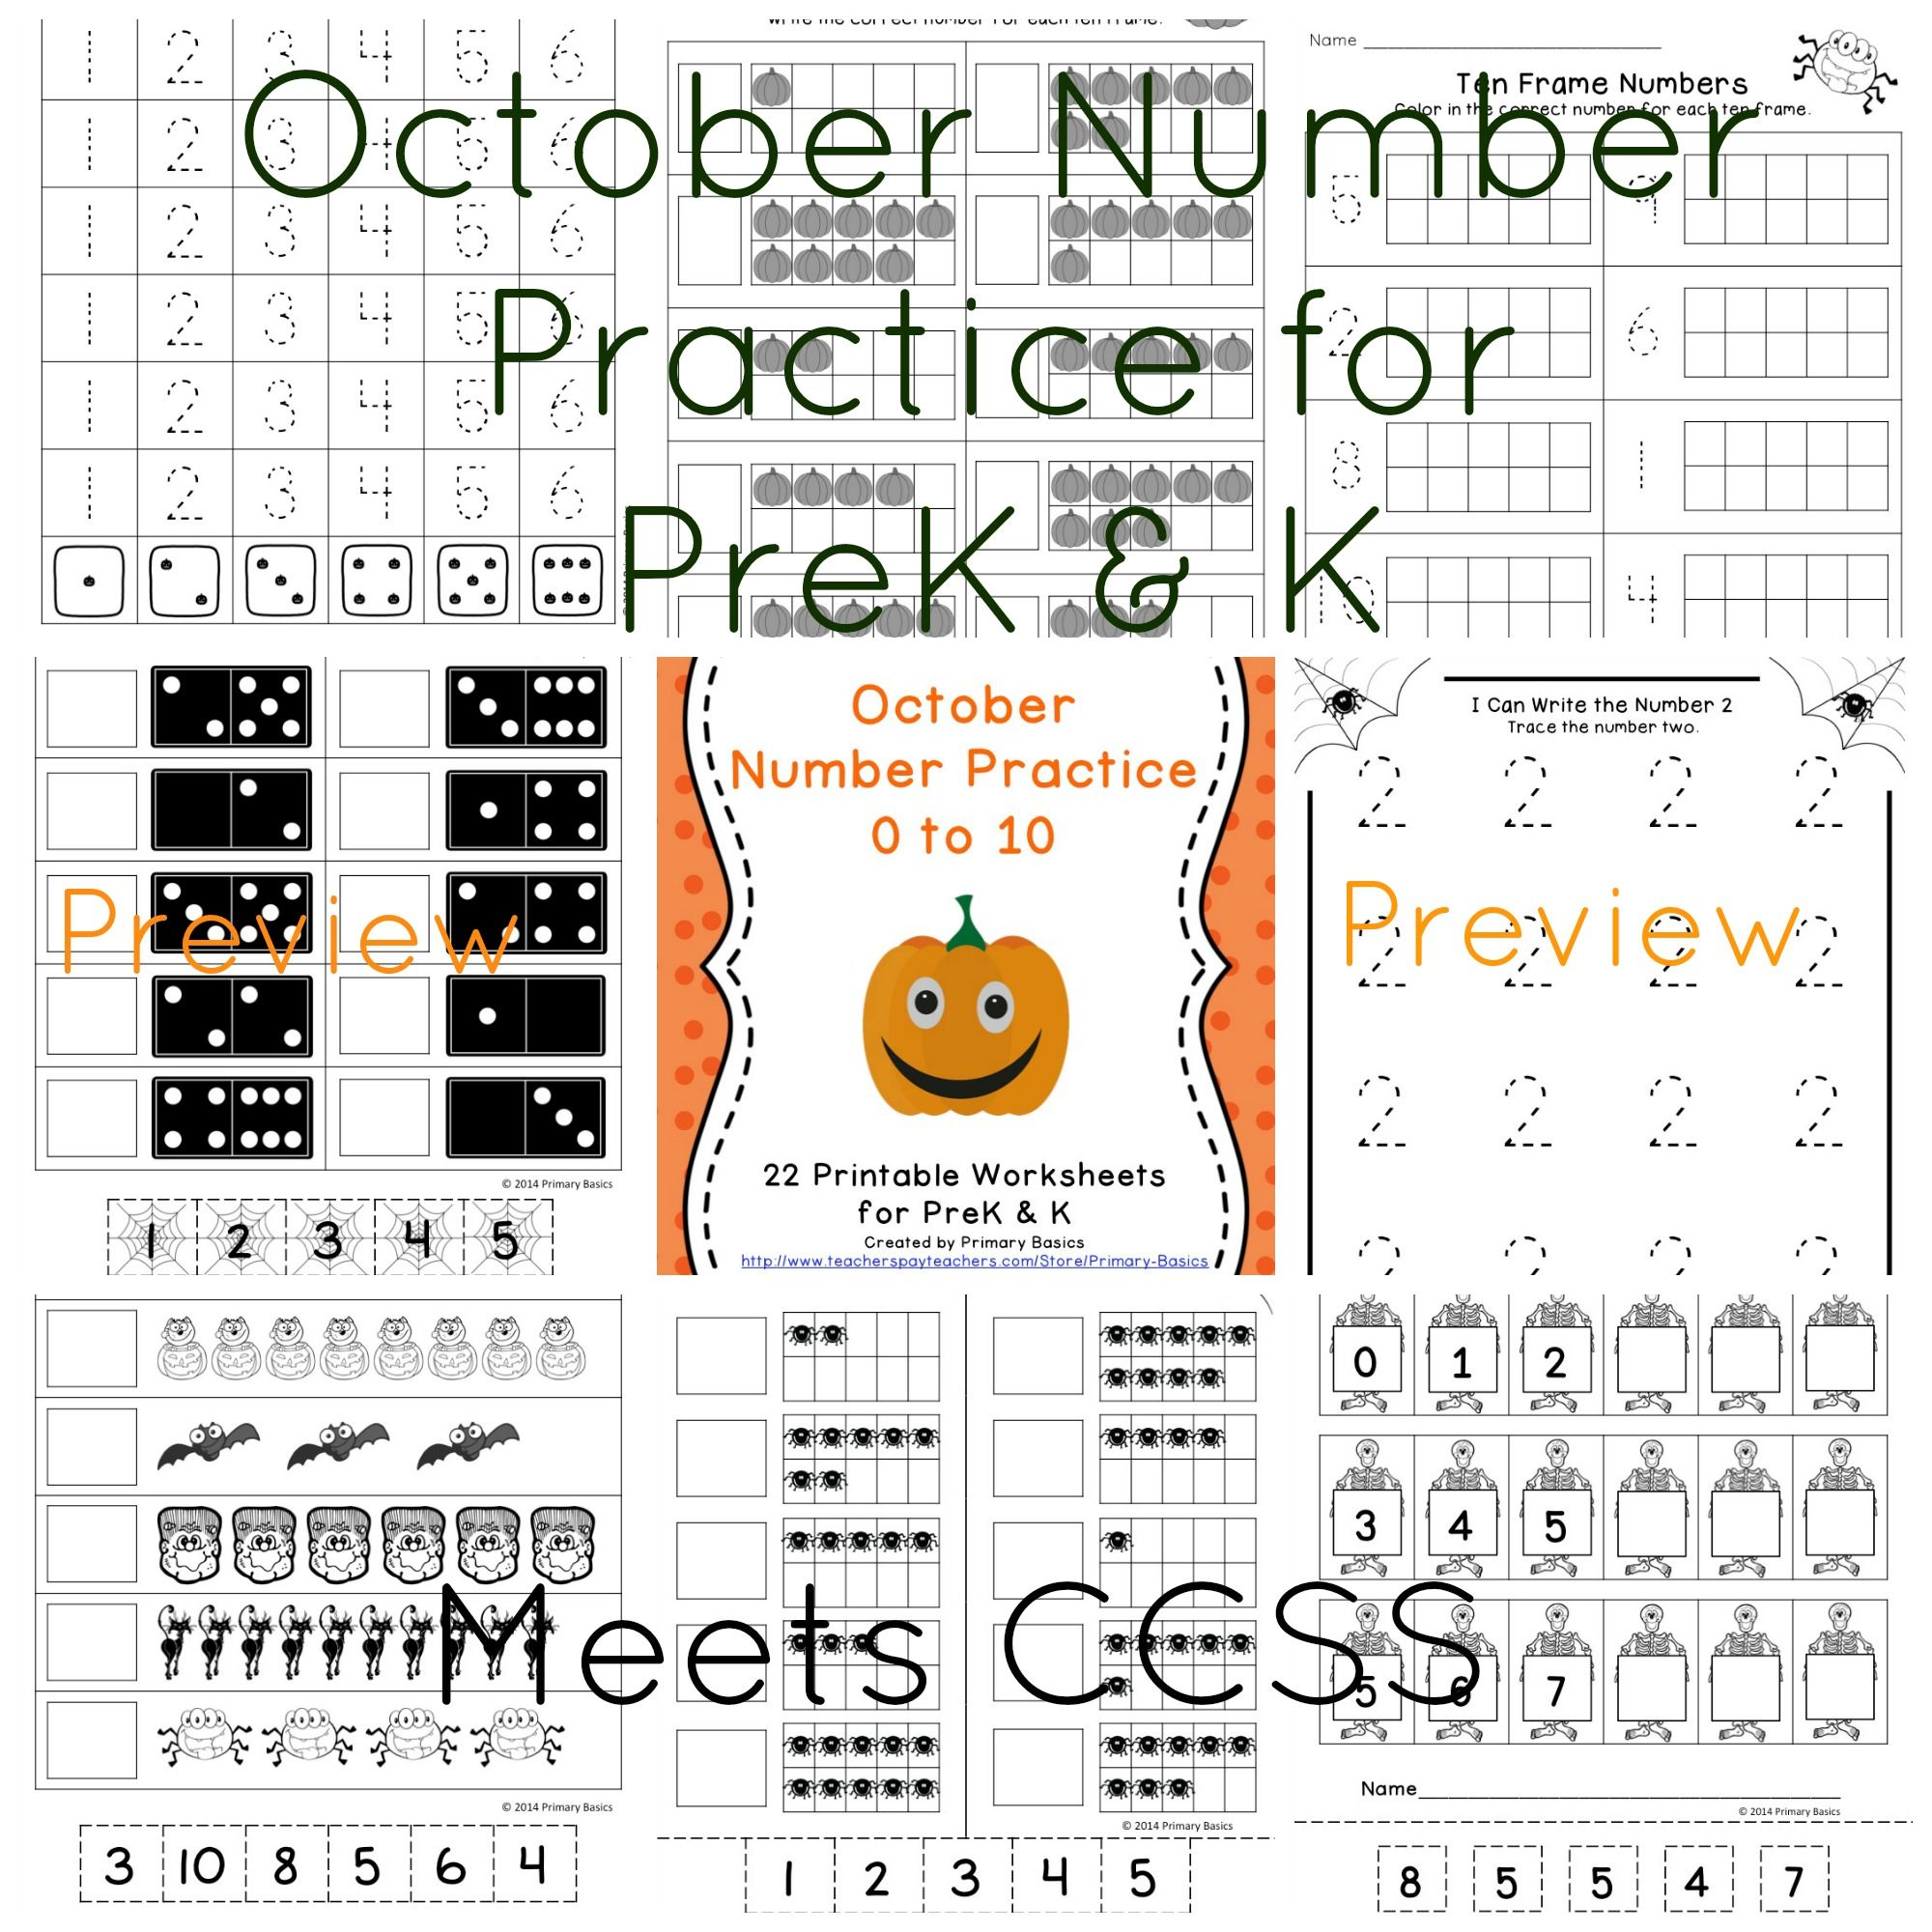 October Number Practice For Prek And K